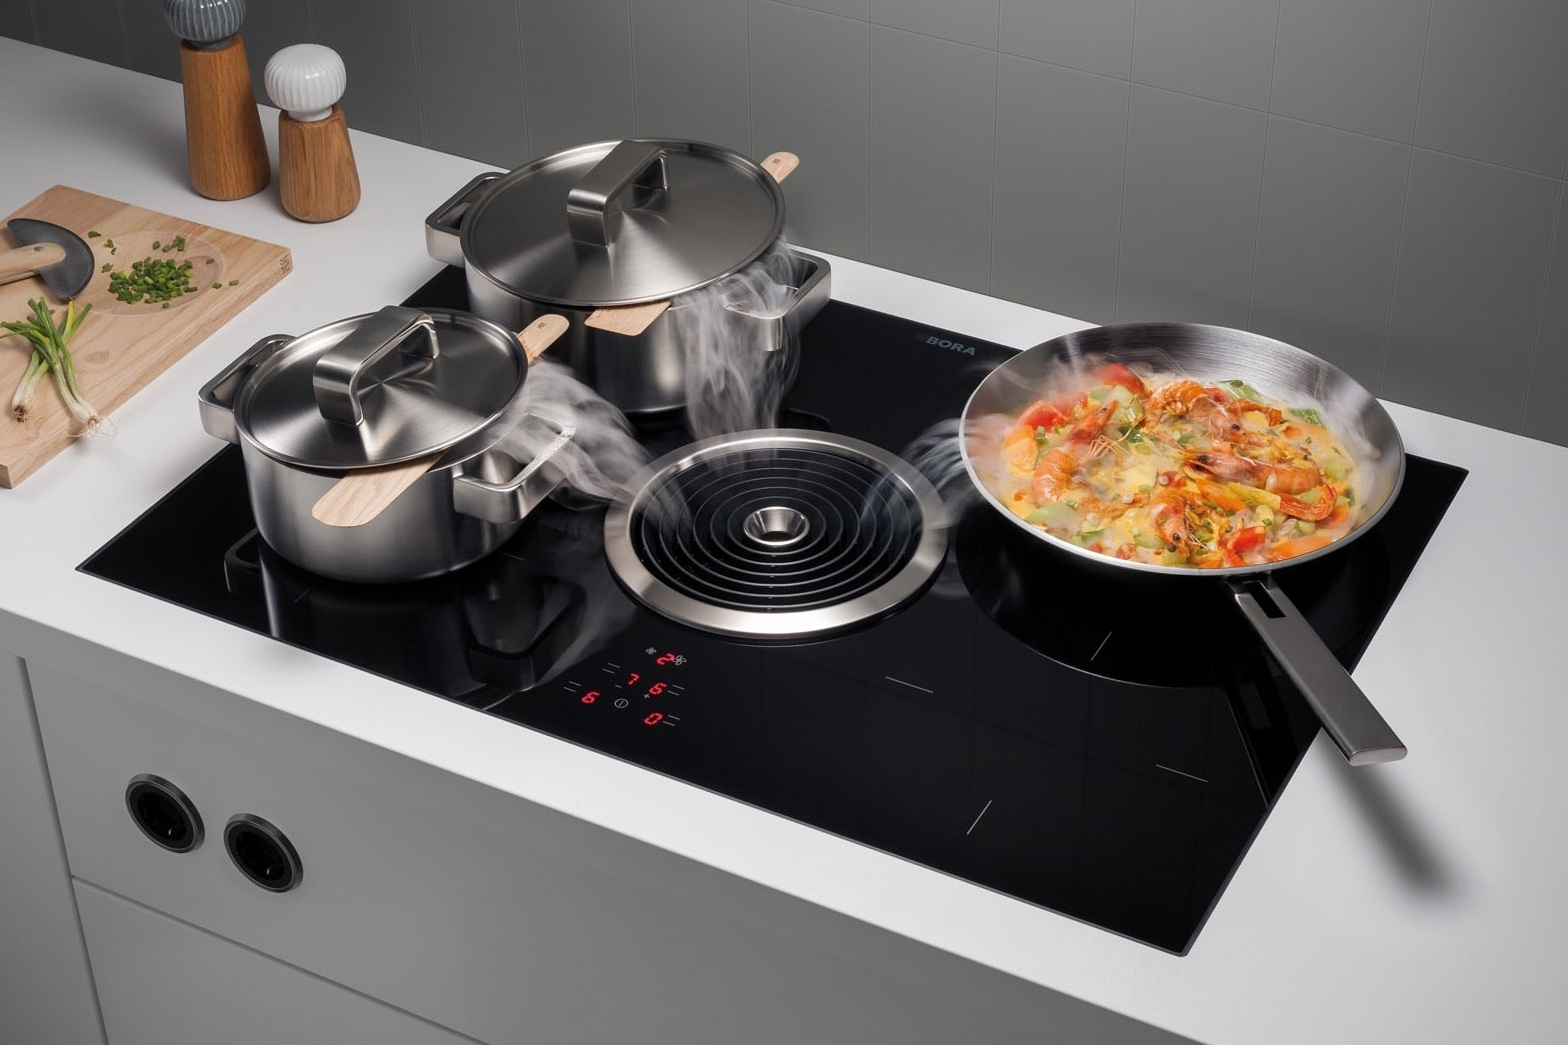 BORA Classic, BORA Basic, or BORA Professional - The BORA cooktop is heralding the end of the extractor hood - a compact system for any kitchen, and revolutionises behaviour in the kitchen.